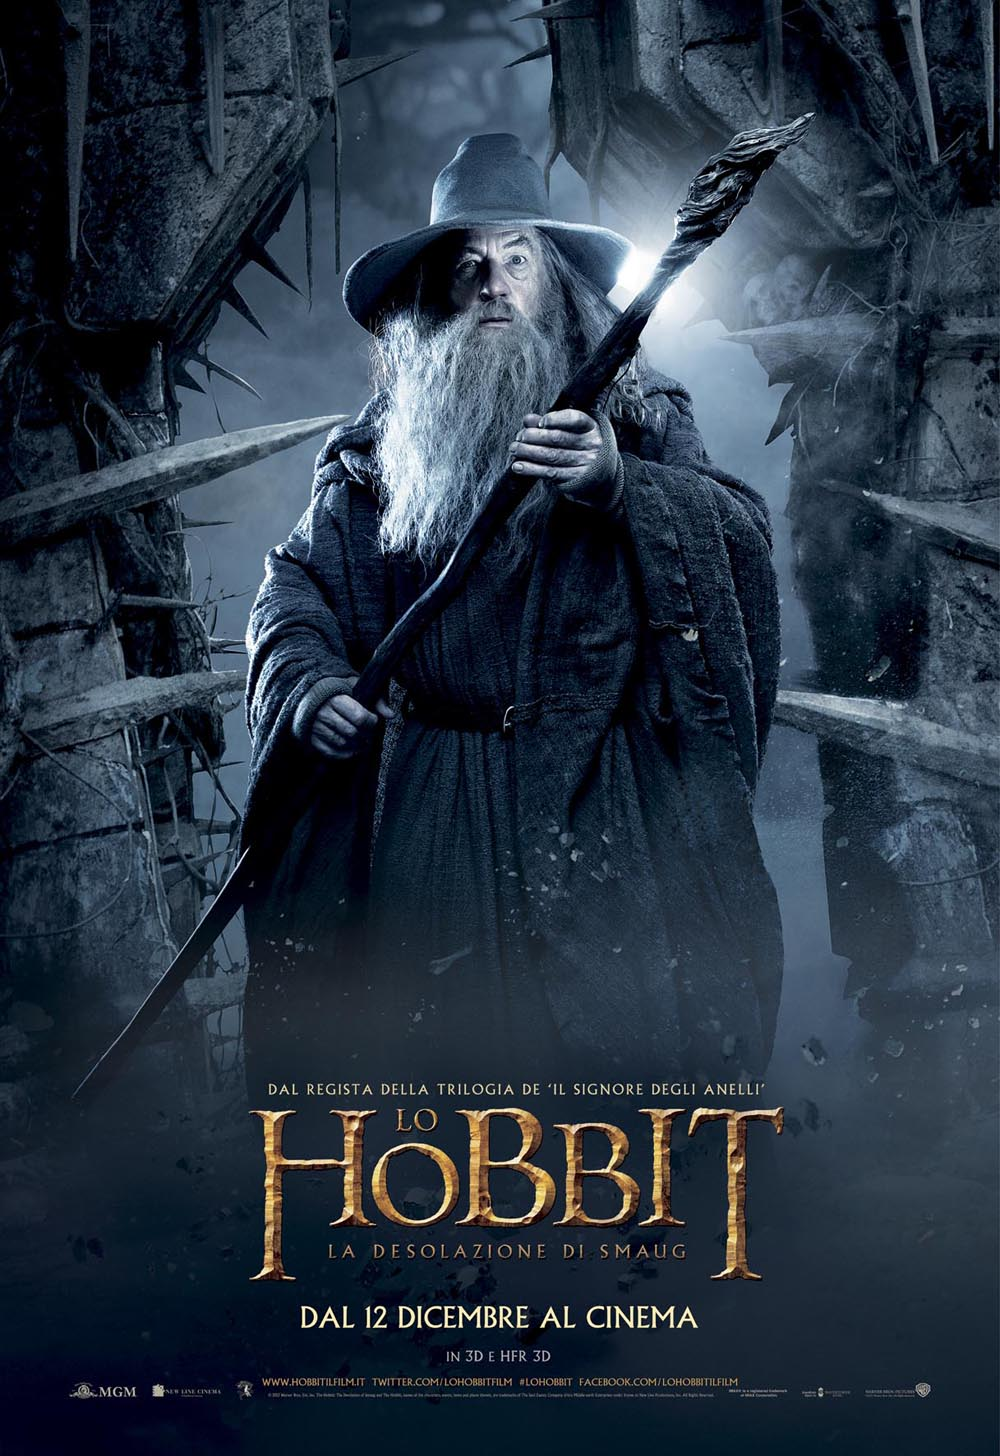 Poster 4 - Lo Hobbit - La desolazione di Smaug Necromancer Hobbit Desolation Of Smaug